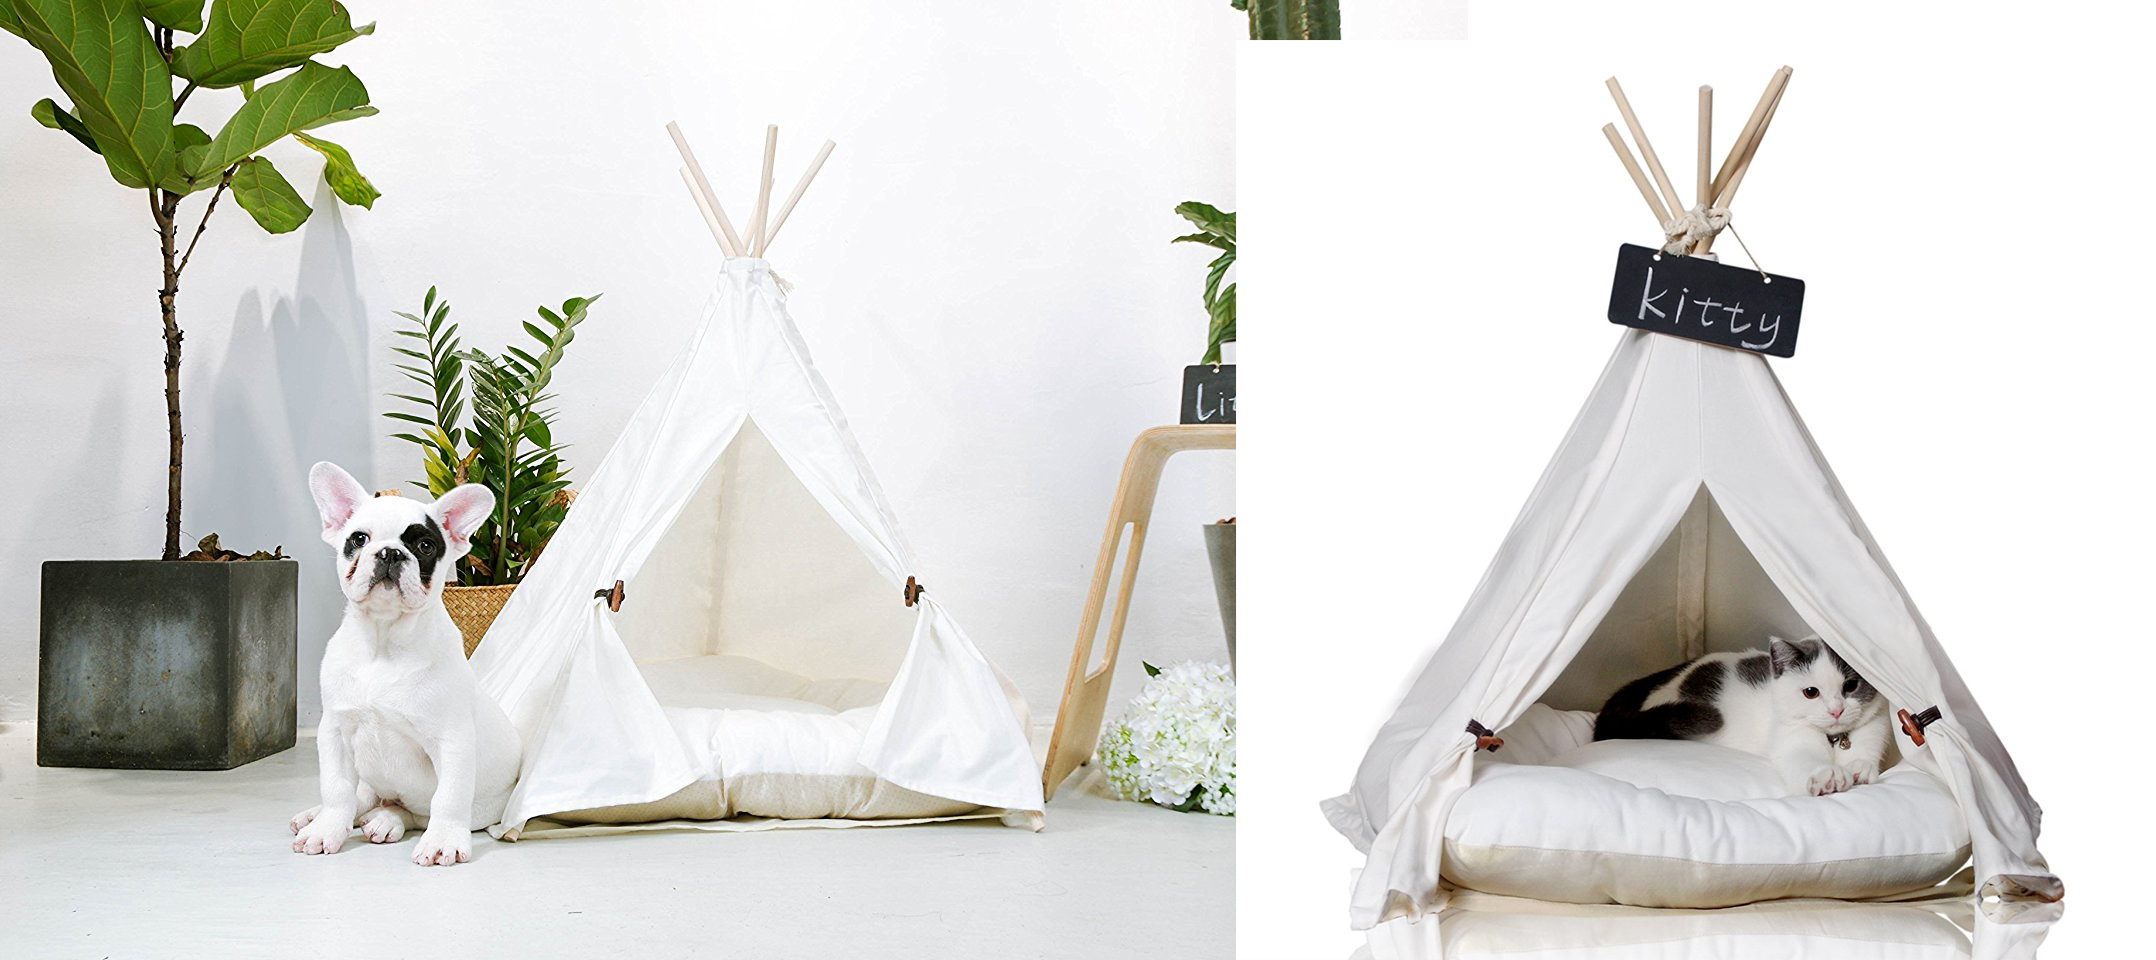 funny-dog-cat-gift-ideas-pet-teepee-house-pet-bed